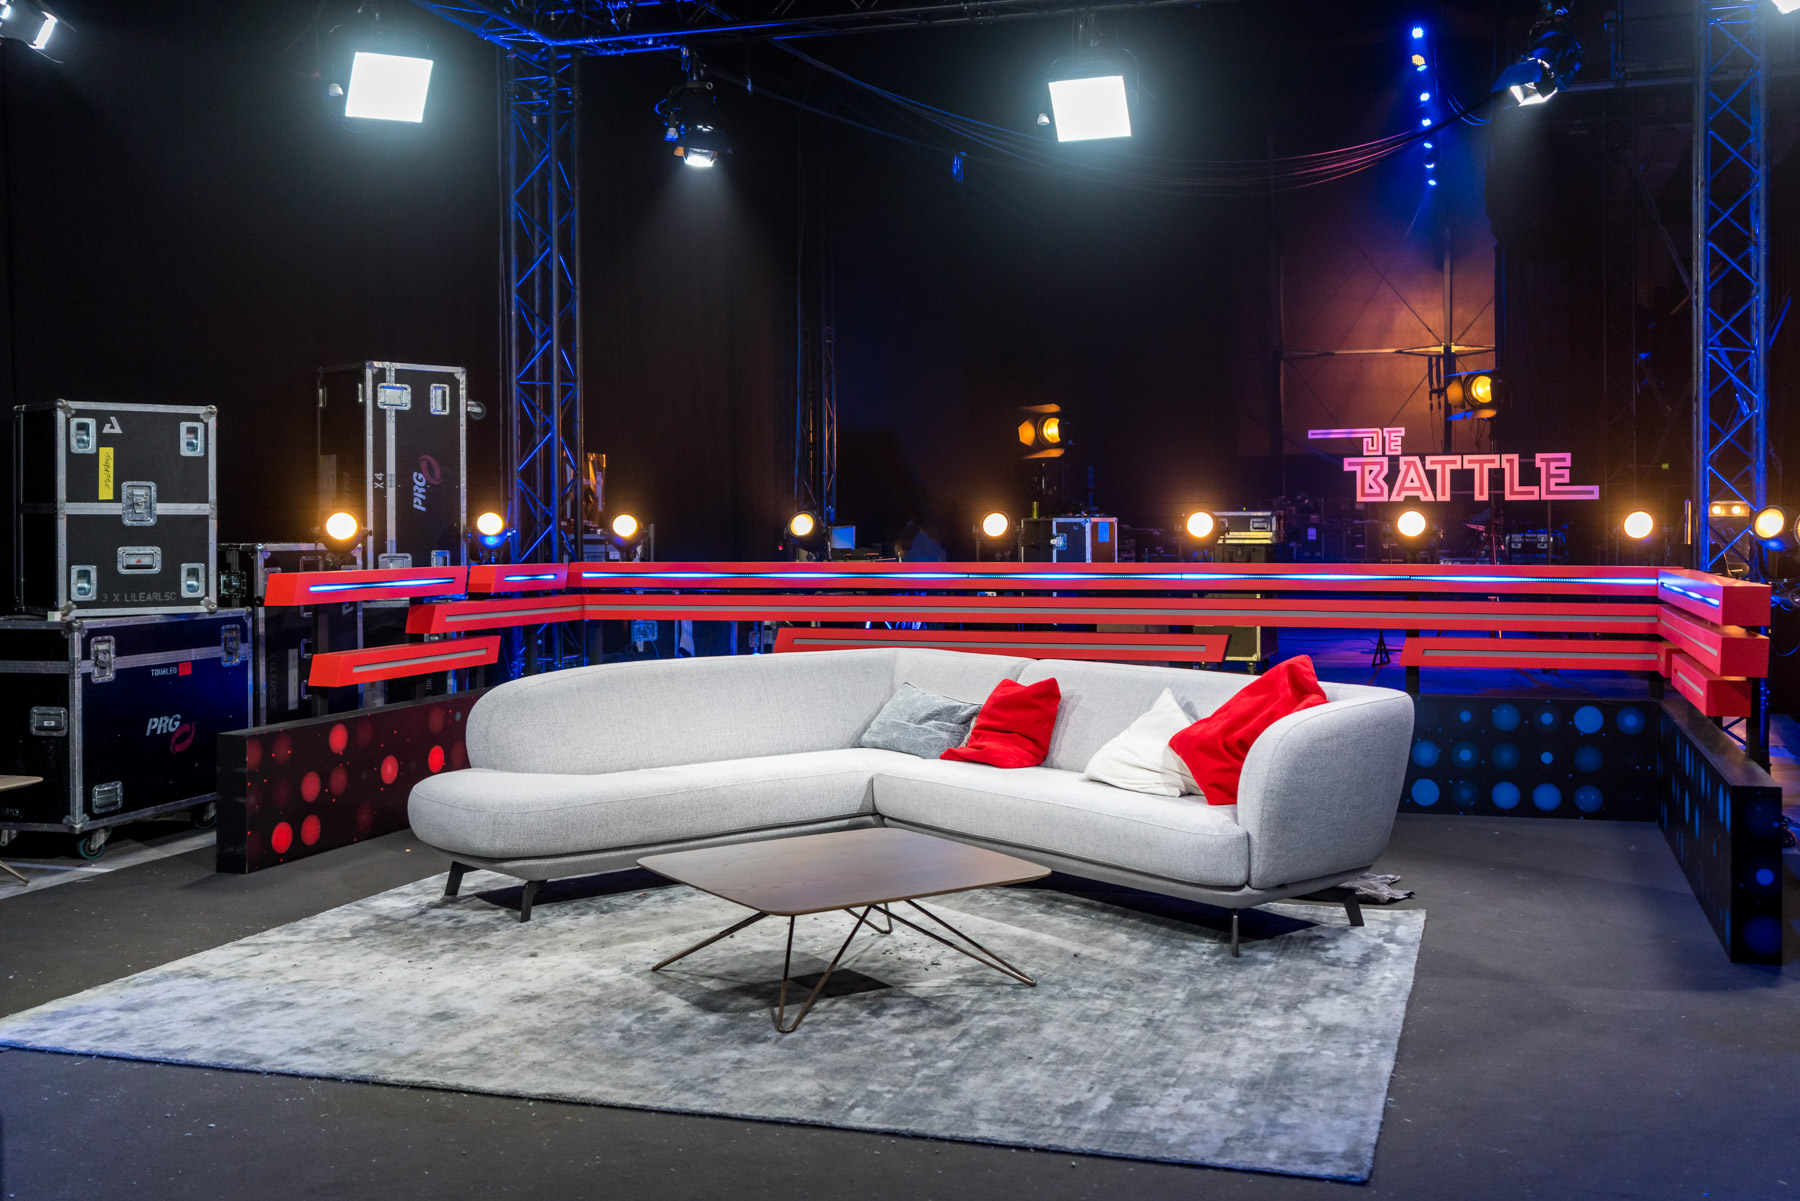 TV-decor - De battle (20)